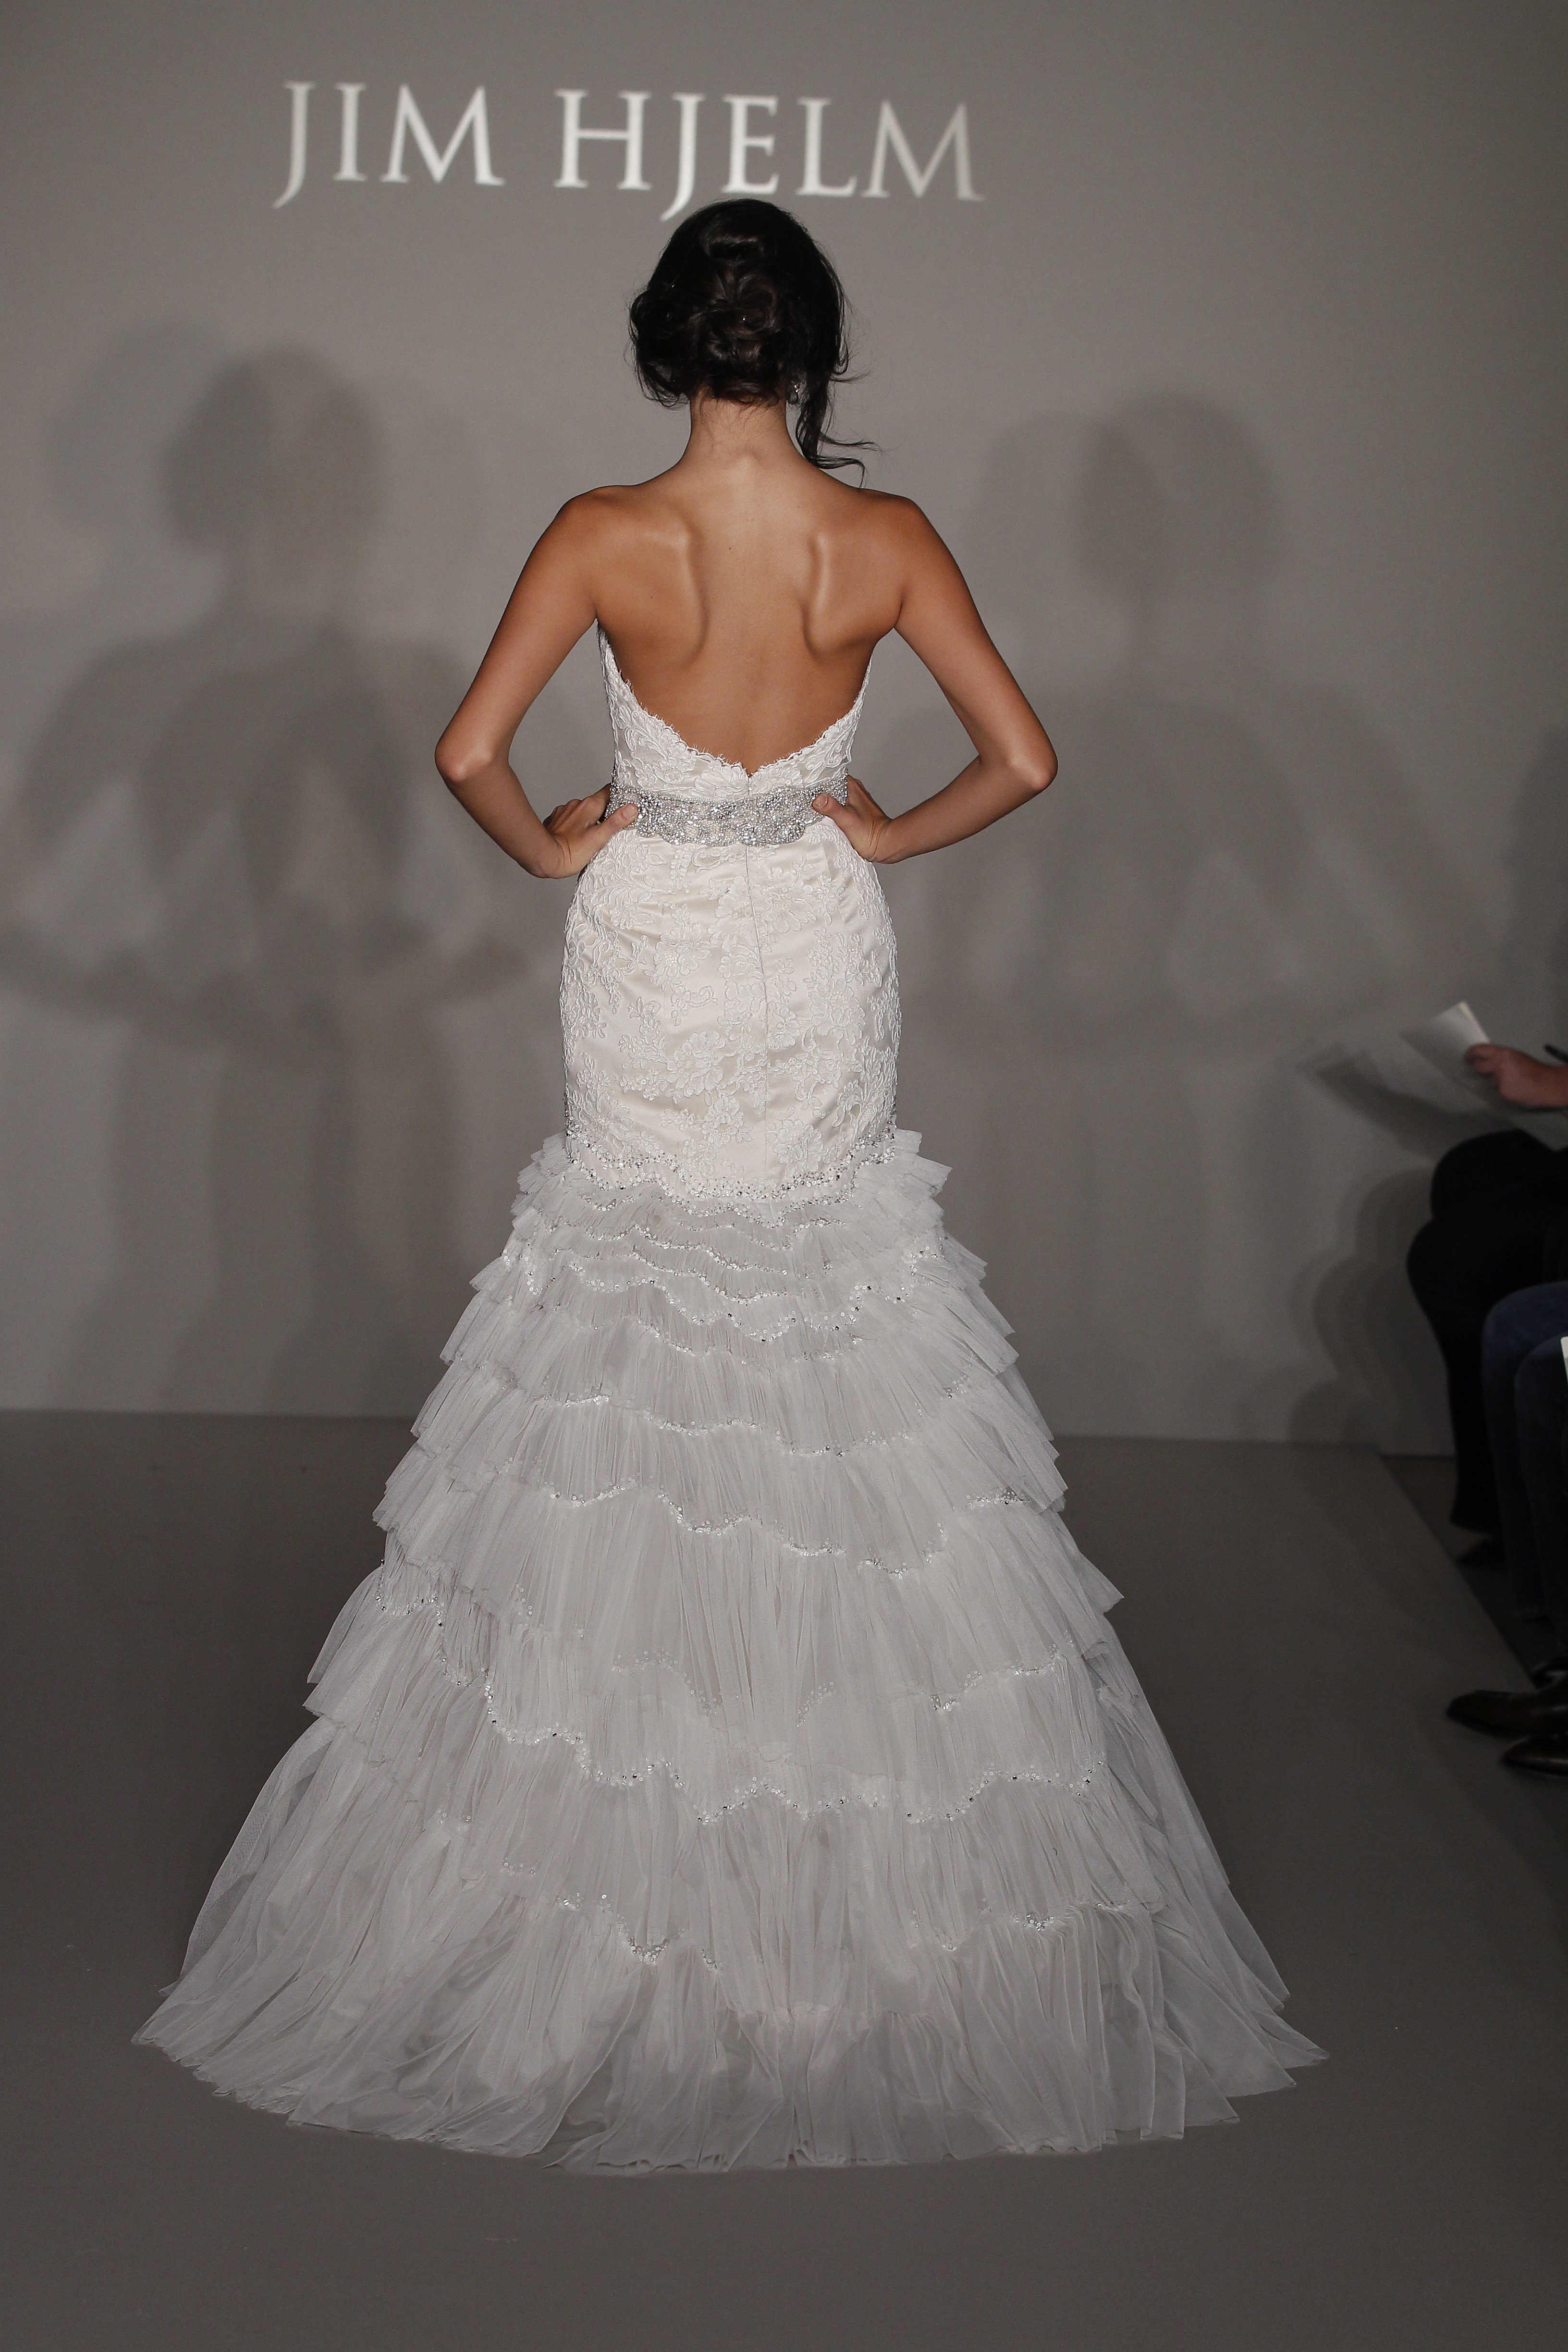 Jim-hjelm-wedding-dress-spring-2012-bridal-gowns-8218-back.original